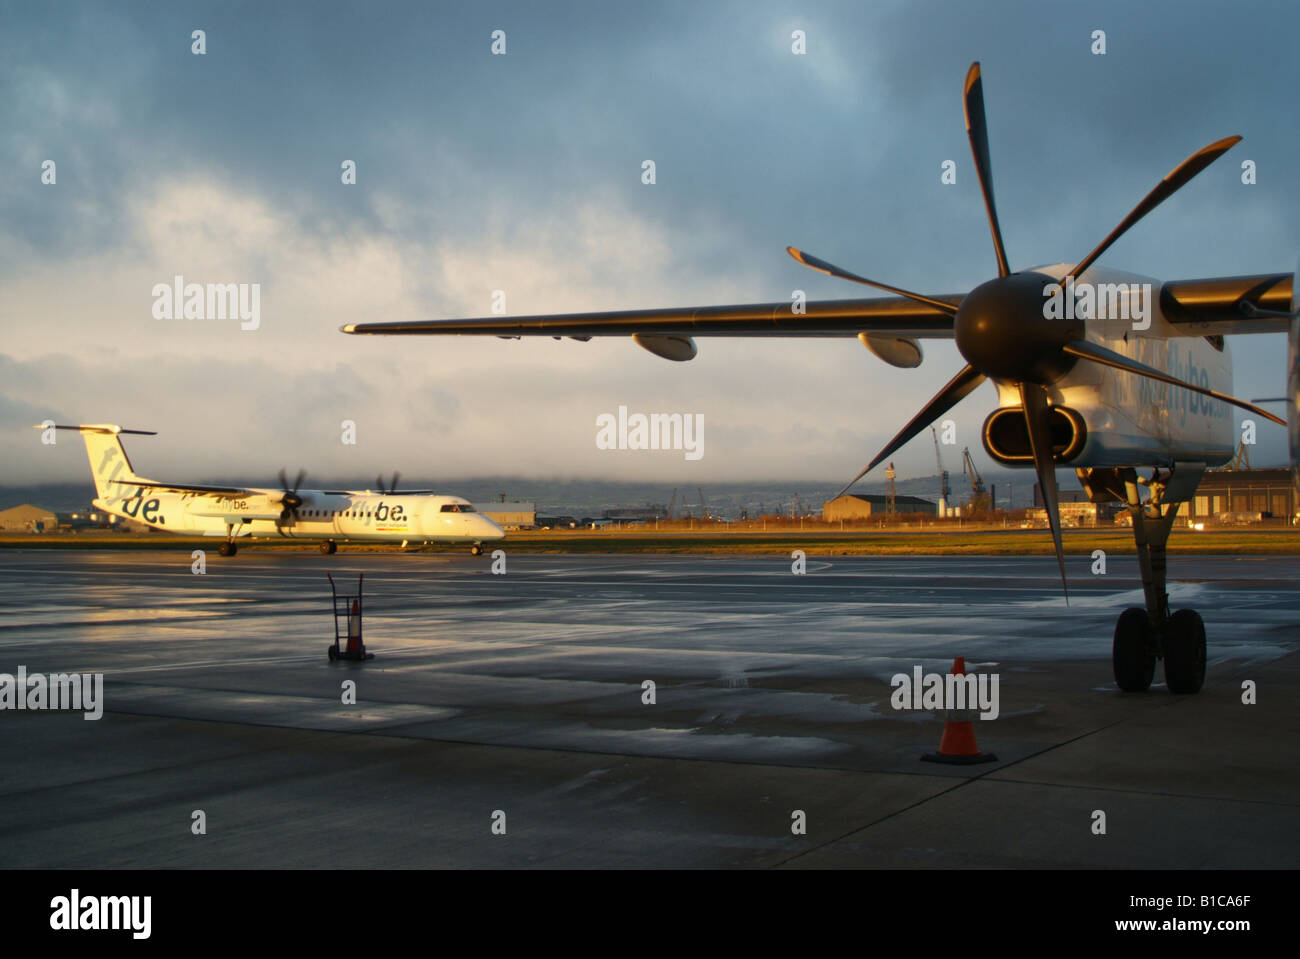 Flybe Dash 8 400 propeller aircraft on apron at Belfast City Airport N. Ireland - Stock Image